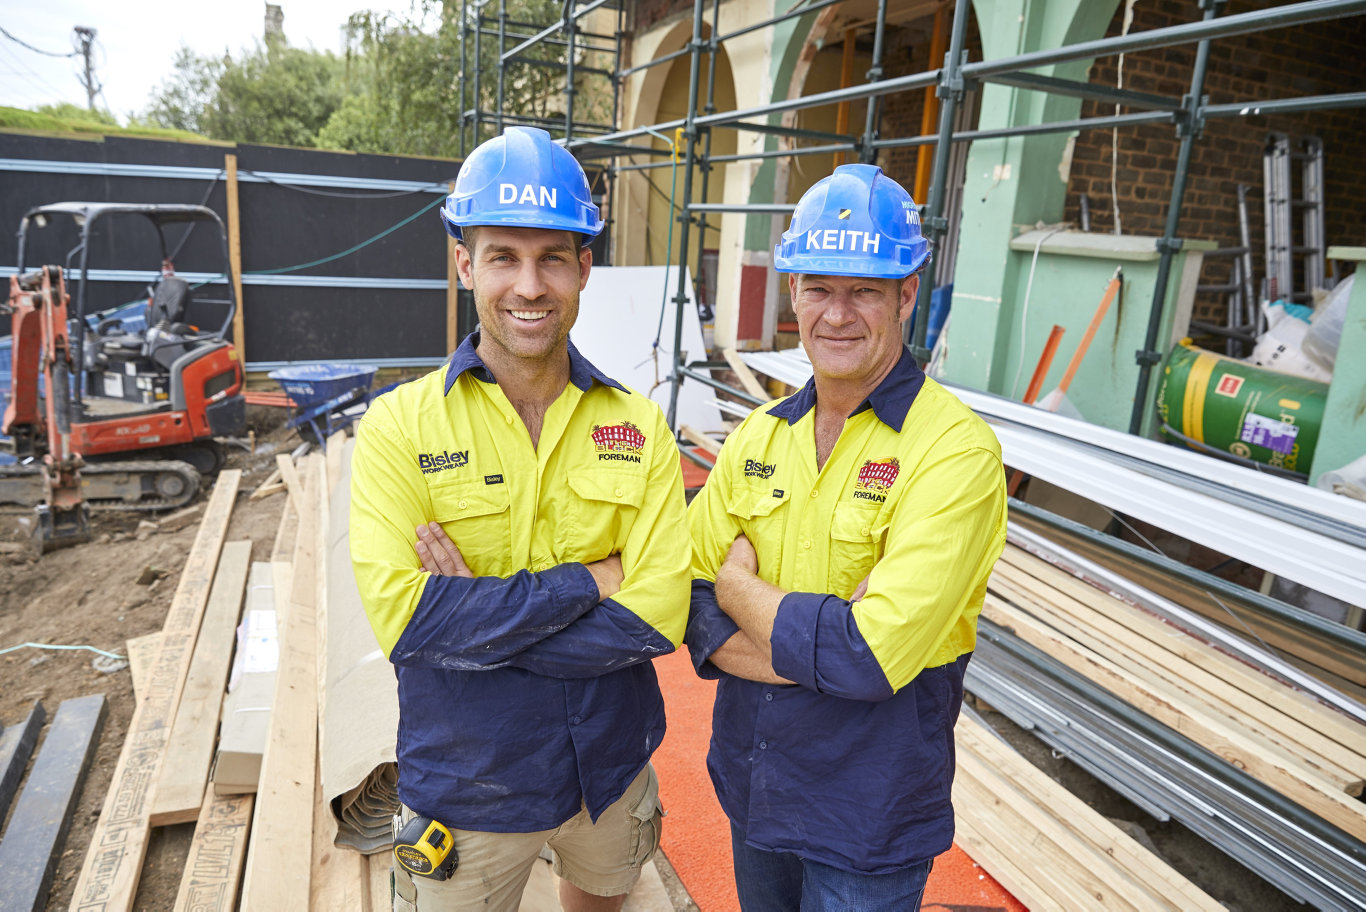 The Block's site foremen Dan Reilly and Keith Schleiger have their work cut out for them this year at The Oslo in St Kilda.